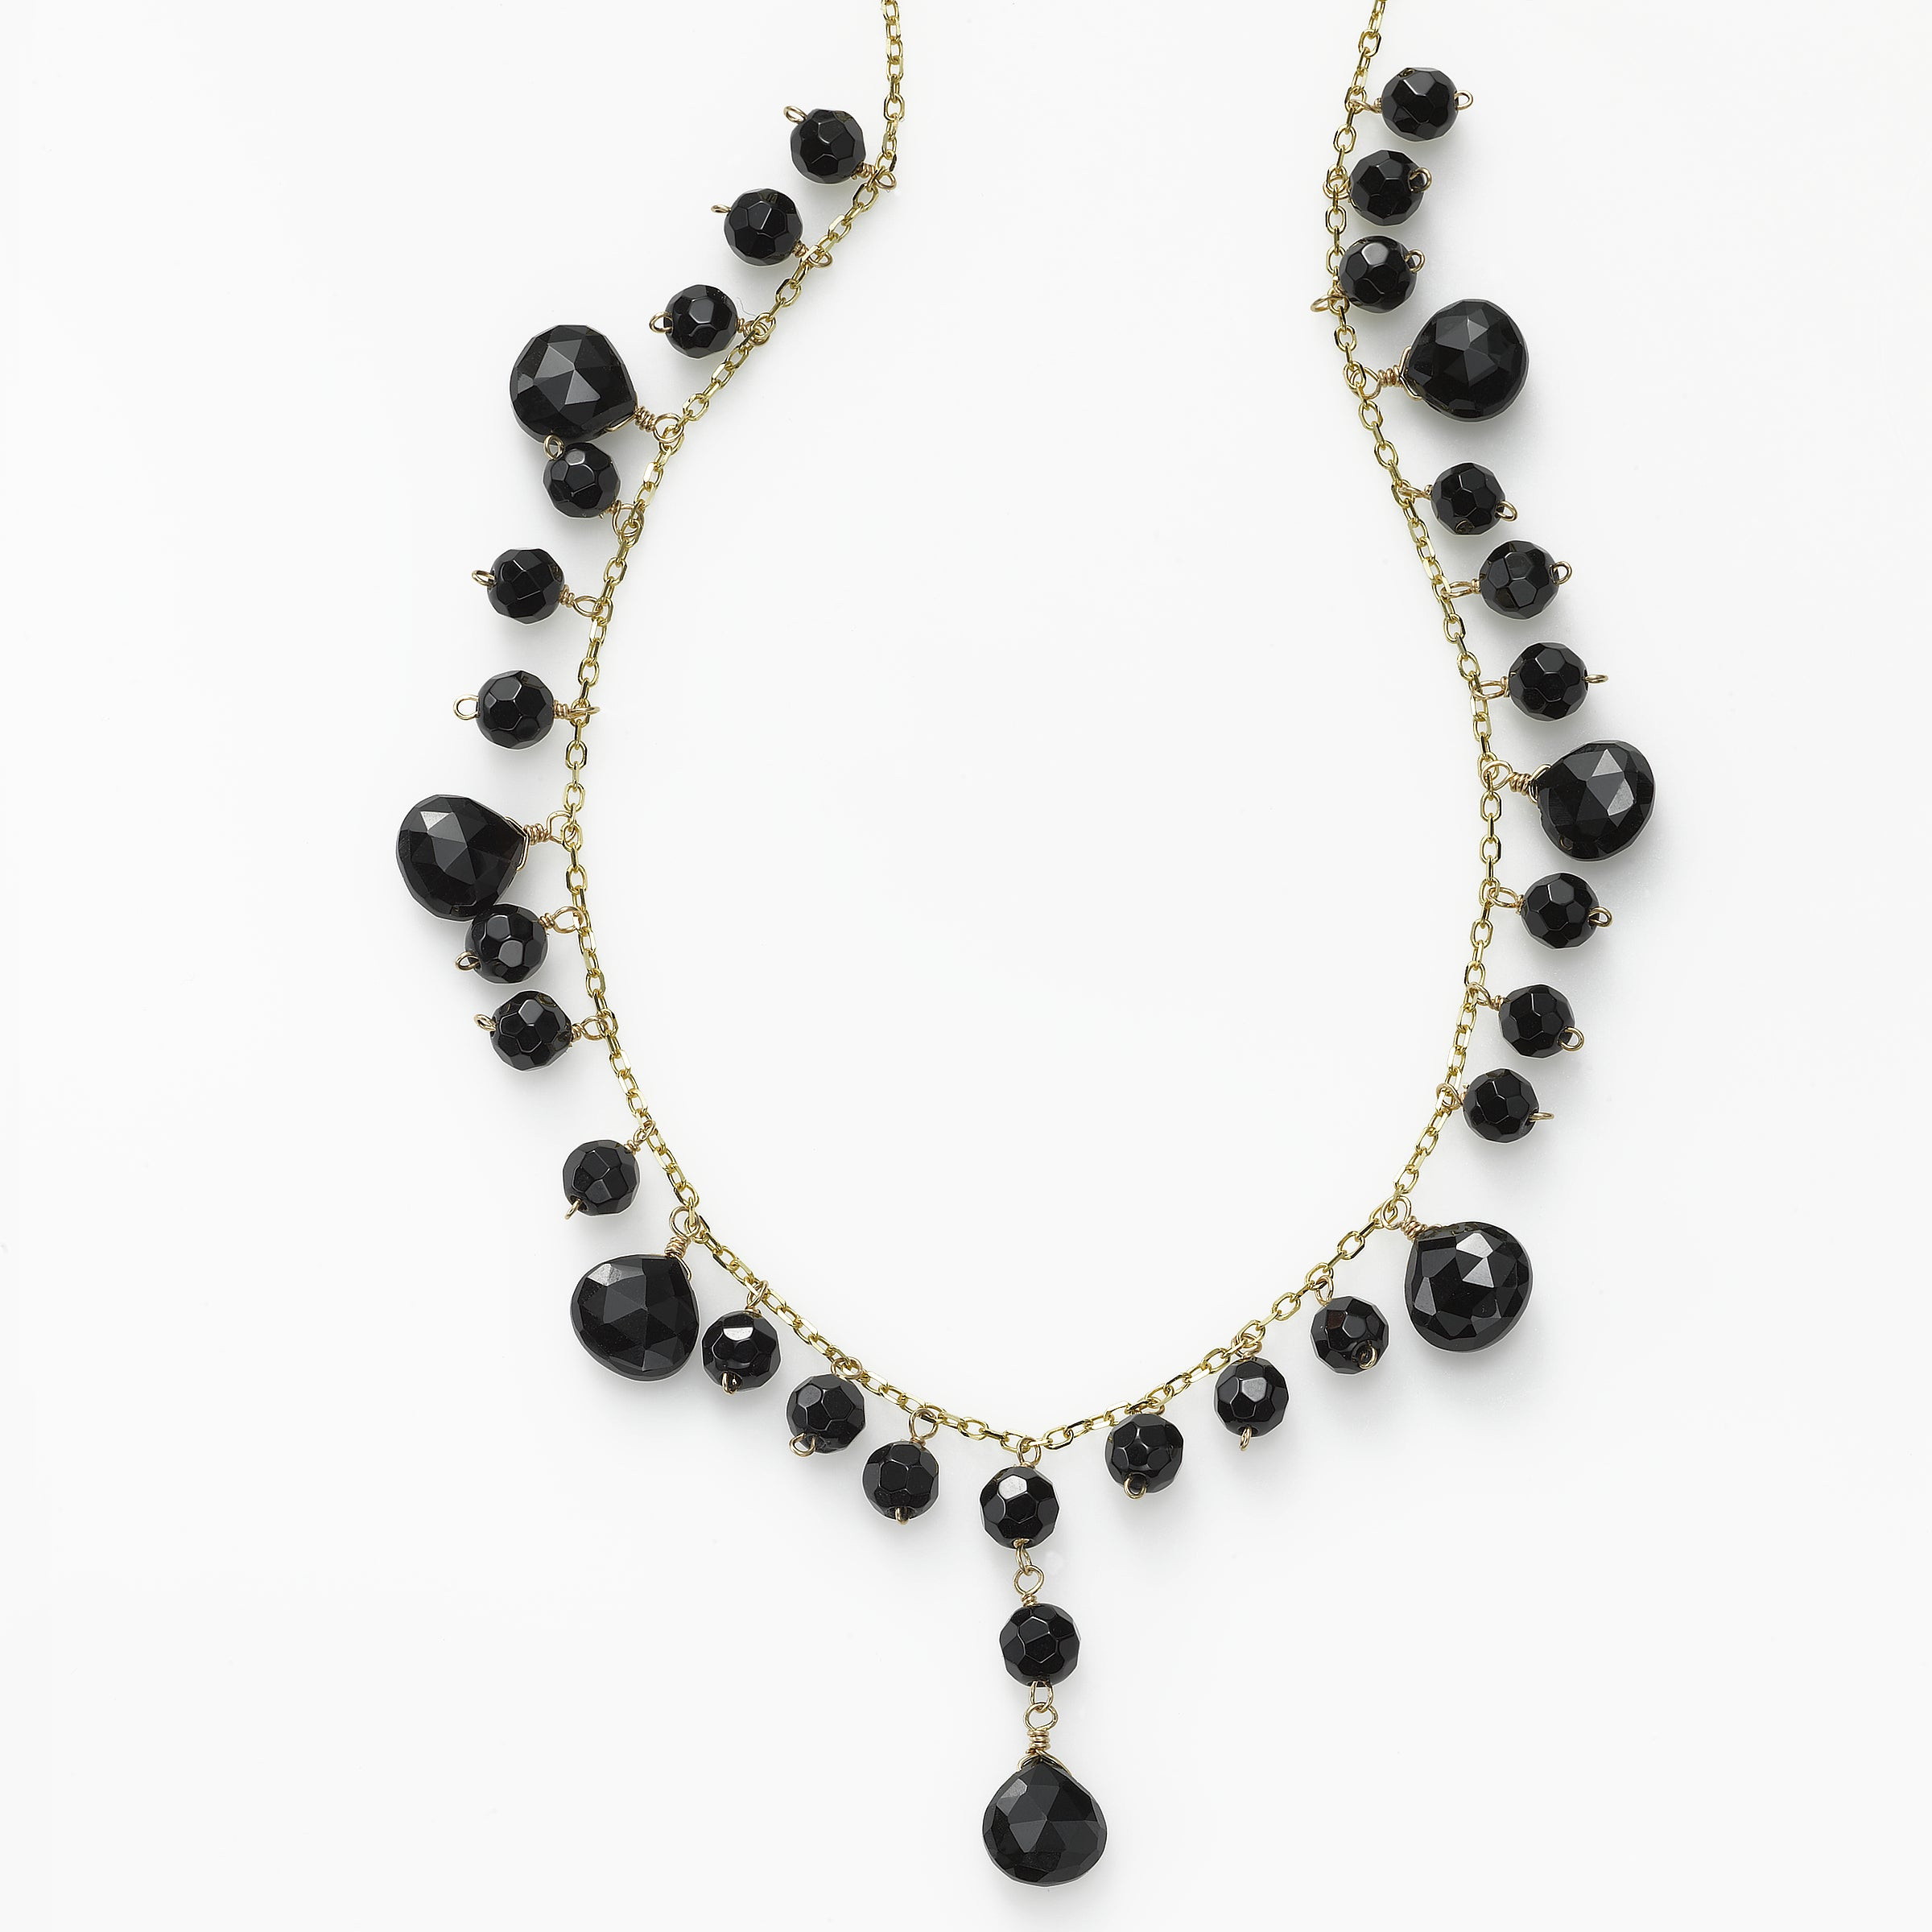 Black Onyx Drop Necklace, 14 Karat Yellow Gold, 16 Inches